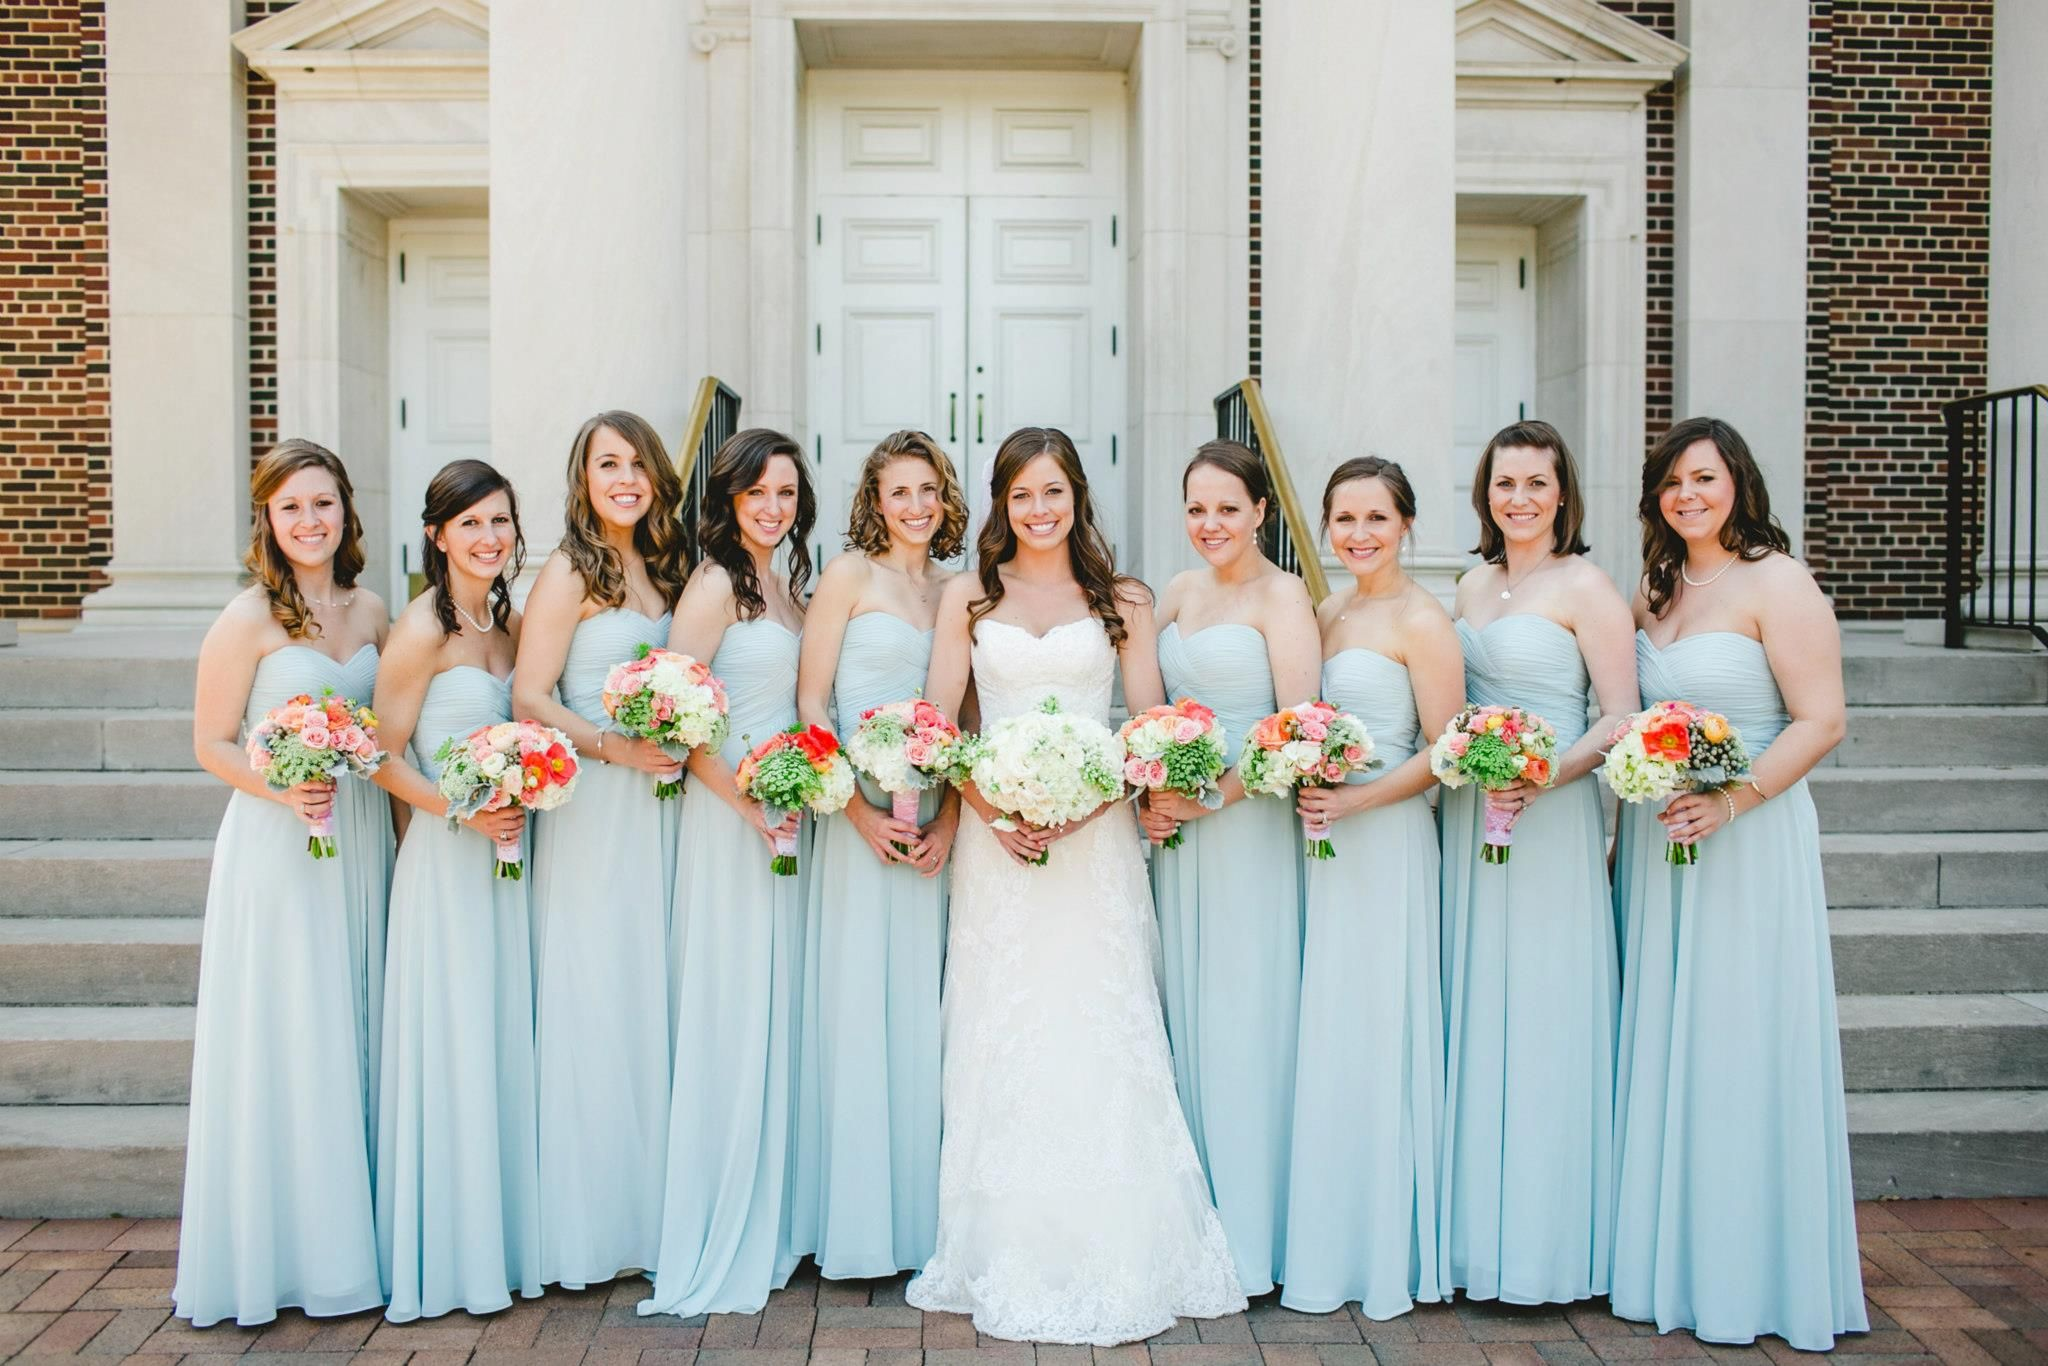 Misty blue dresses from bari jay bridesmaids wedding colors misty blue dresses from bari jay bridesmaids ombrellifo Images